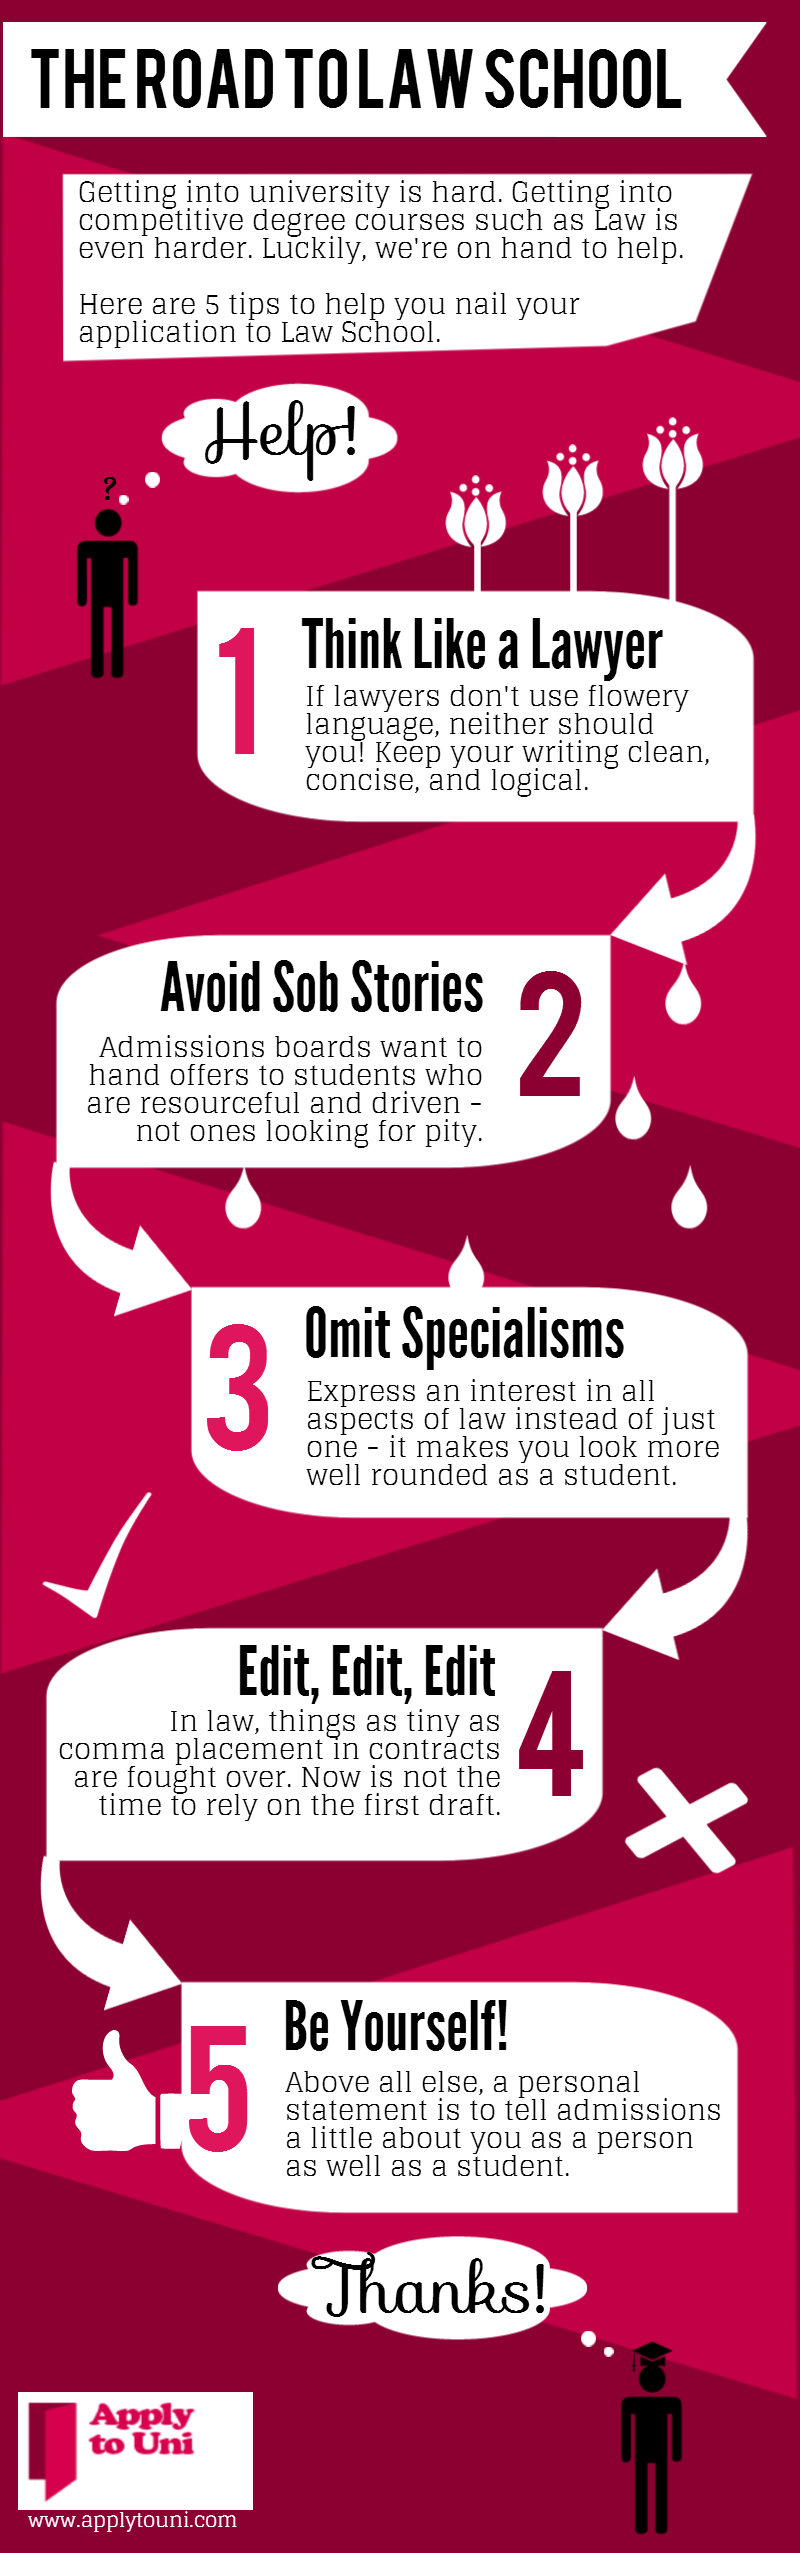 The Road To Law School [INFOGRAPHIC] #law #school